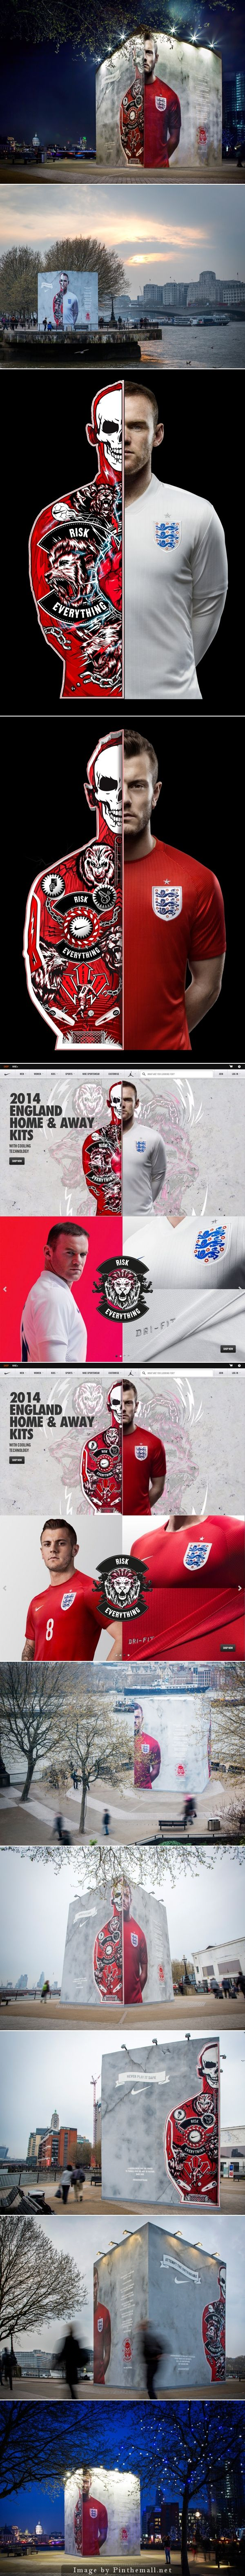 Nike has unveiled their advertising for the World Cup. Their campaign has rolled out for web and print, and the graphics are on super massive displays outdoors. #riskeverything #branding #advertising